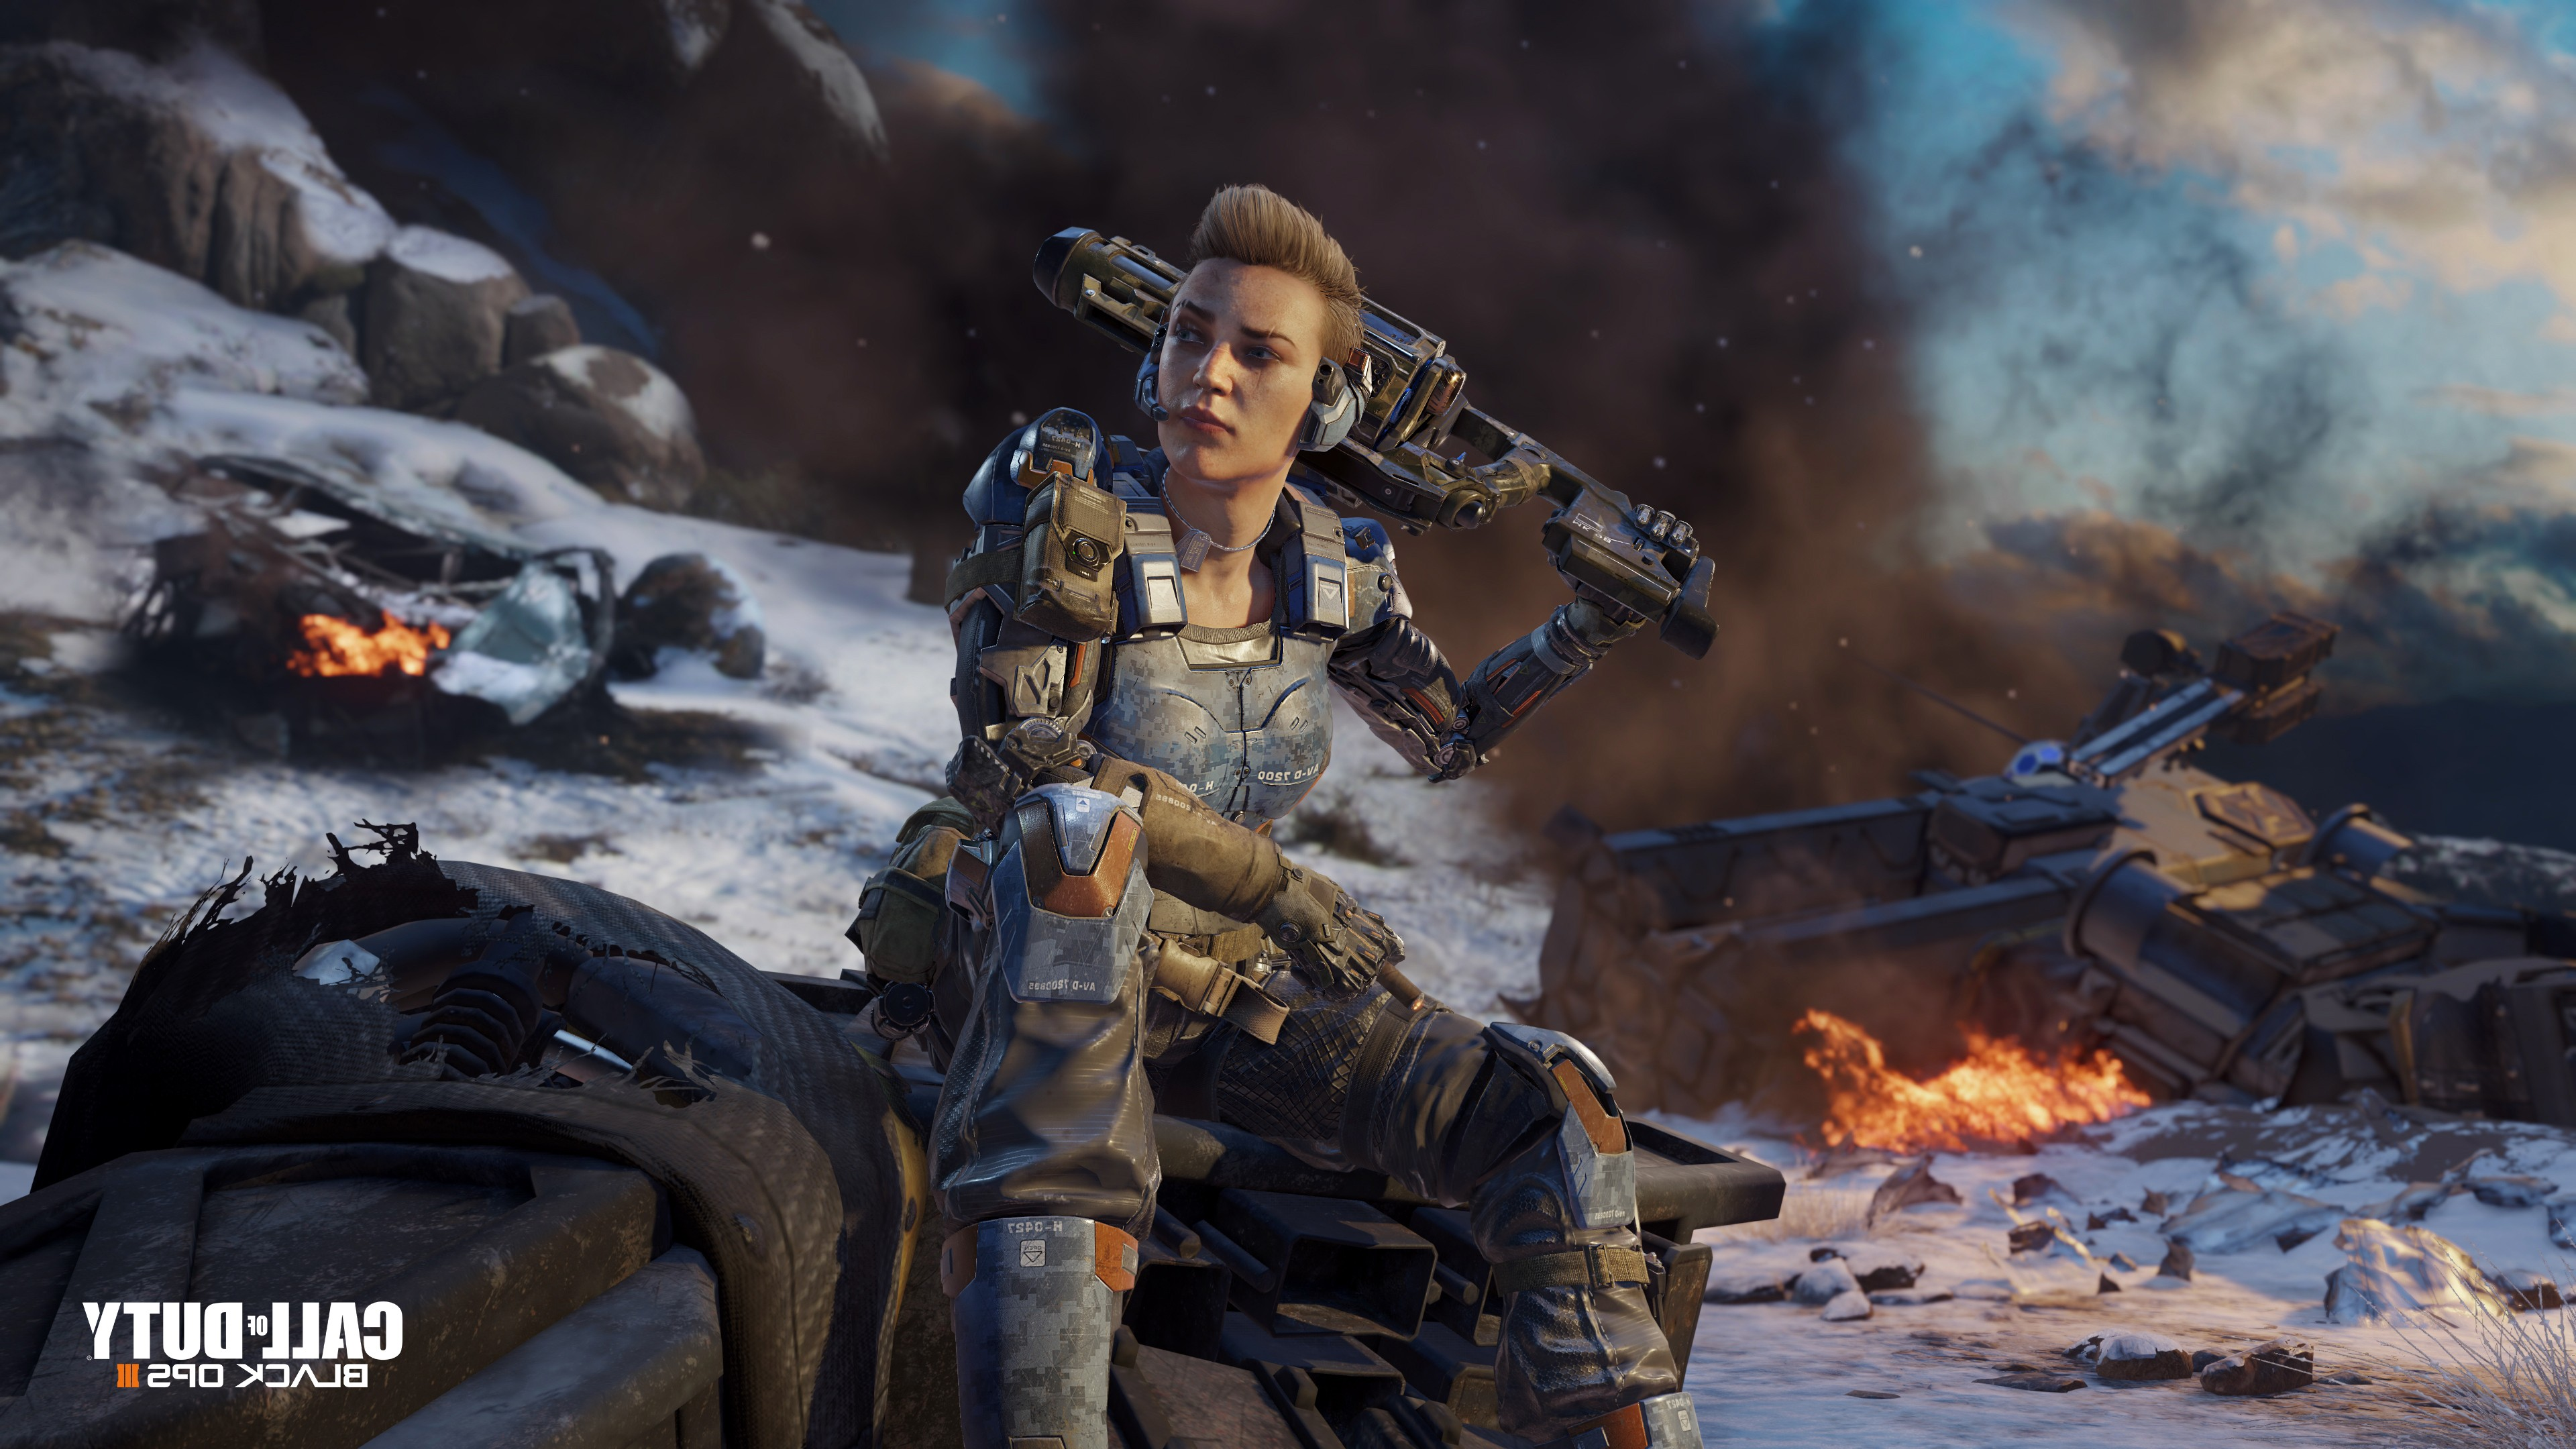 Wallpaper 4k Call Of Duty Black Ops 3 Game Call Of Duty Black Ops